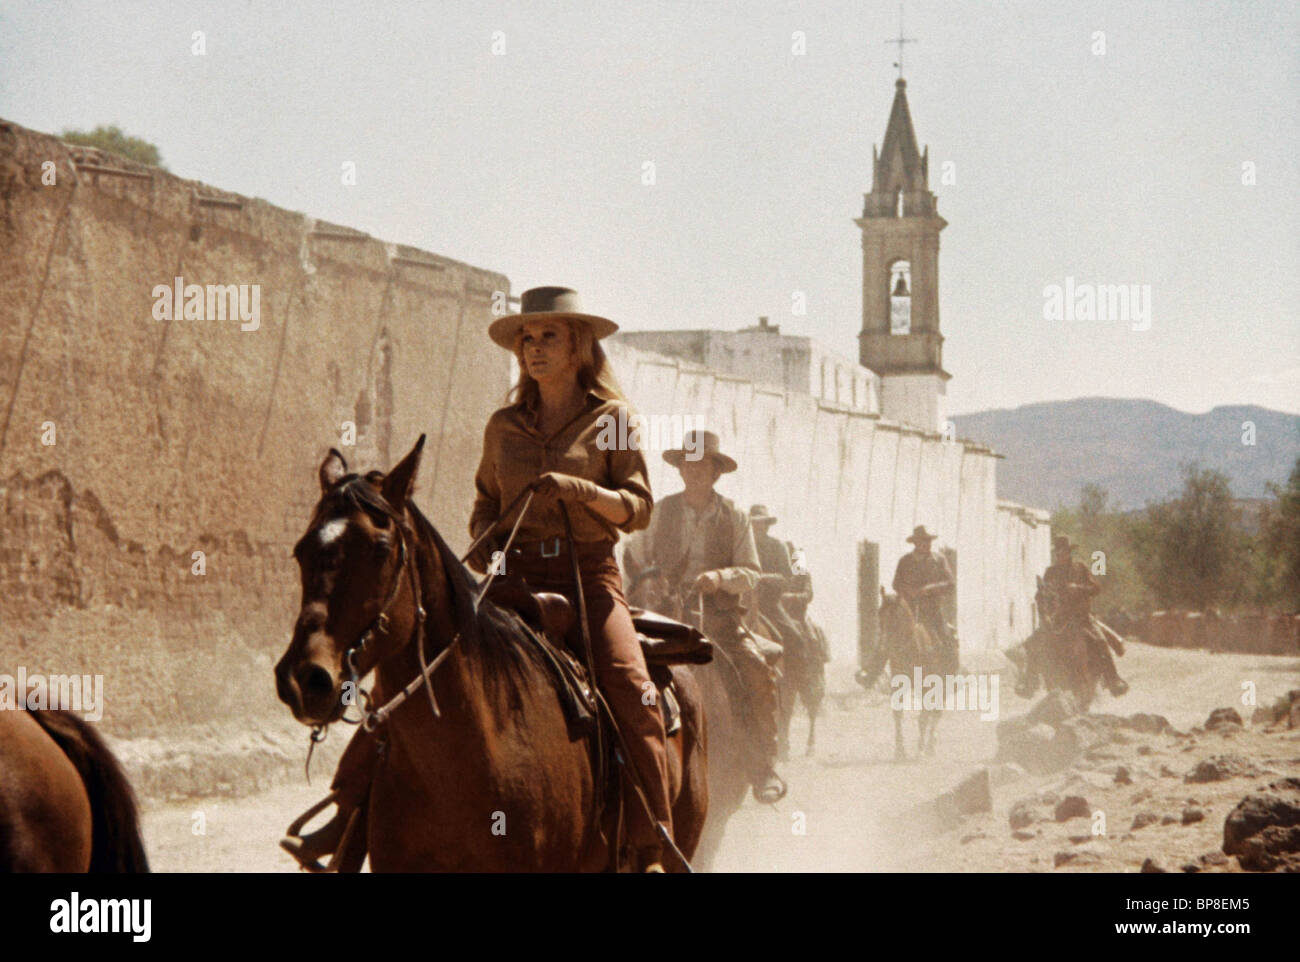 ANN-MARGRET THE TRAIN ROBBERS (1973) - Stock Image